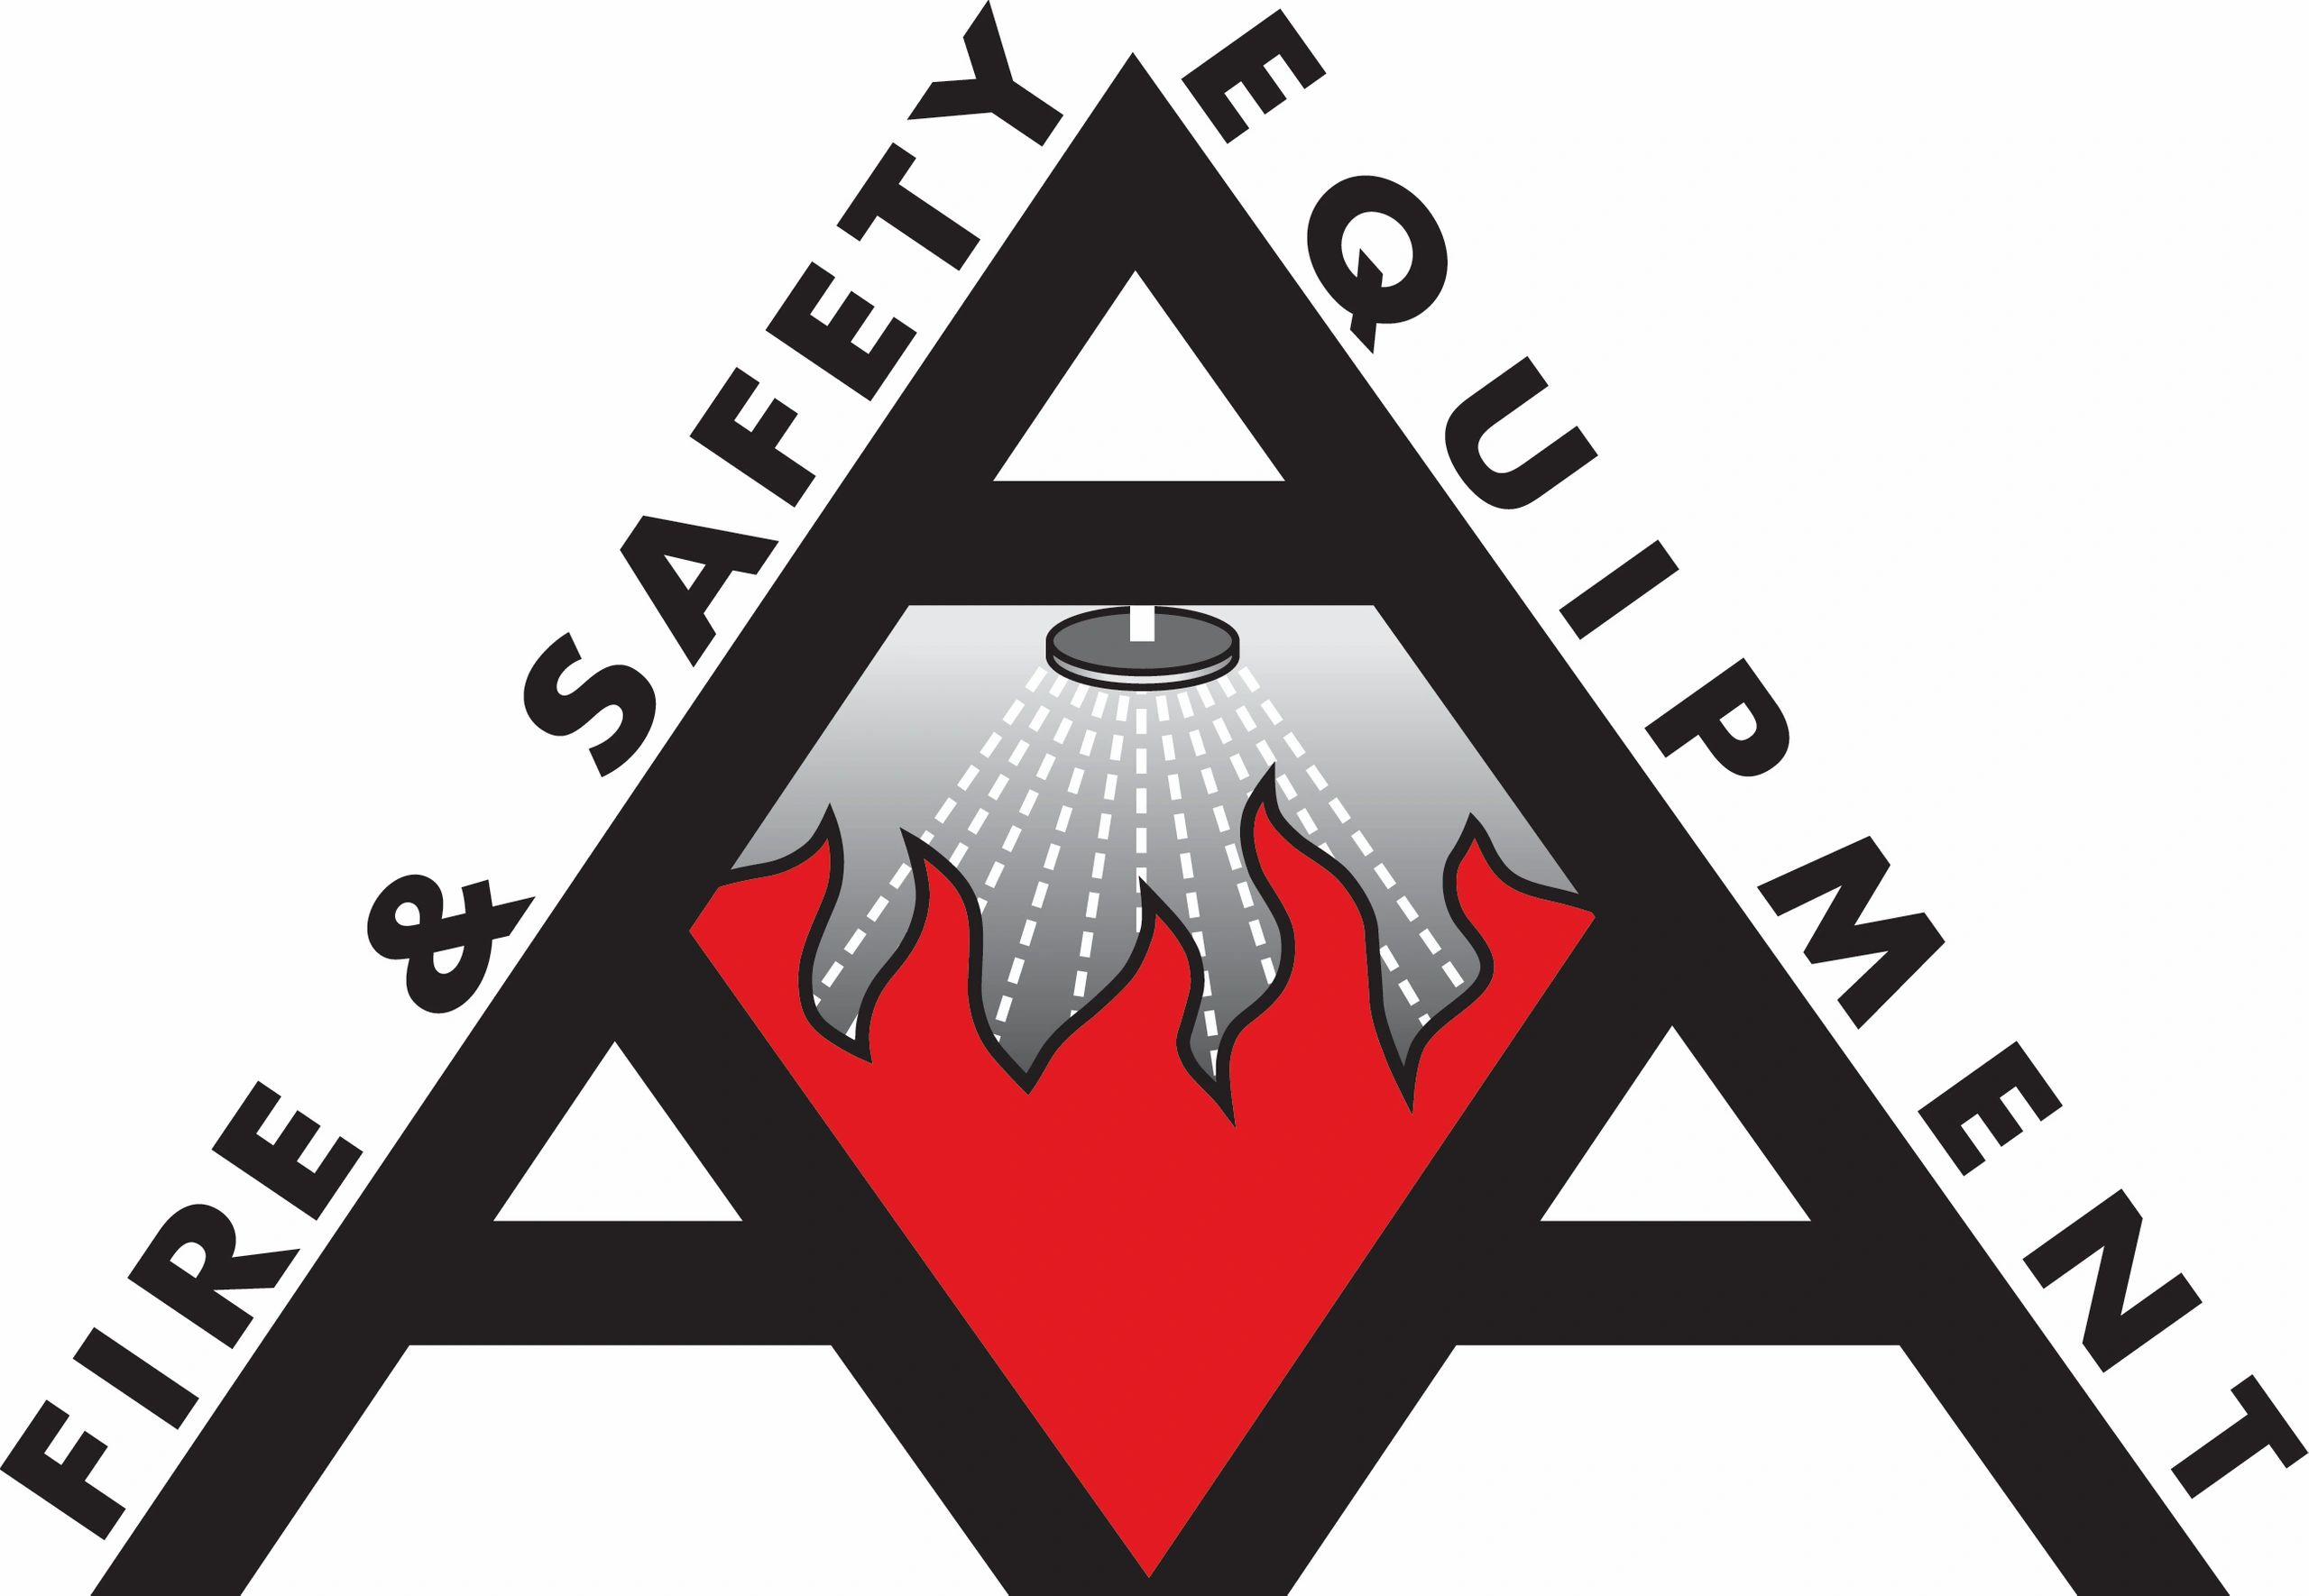 Fire Protection Aaa Fire Amp Safety Equipment Co Inc